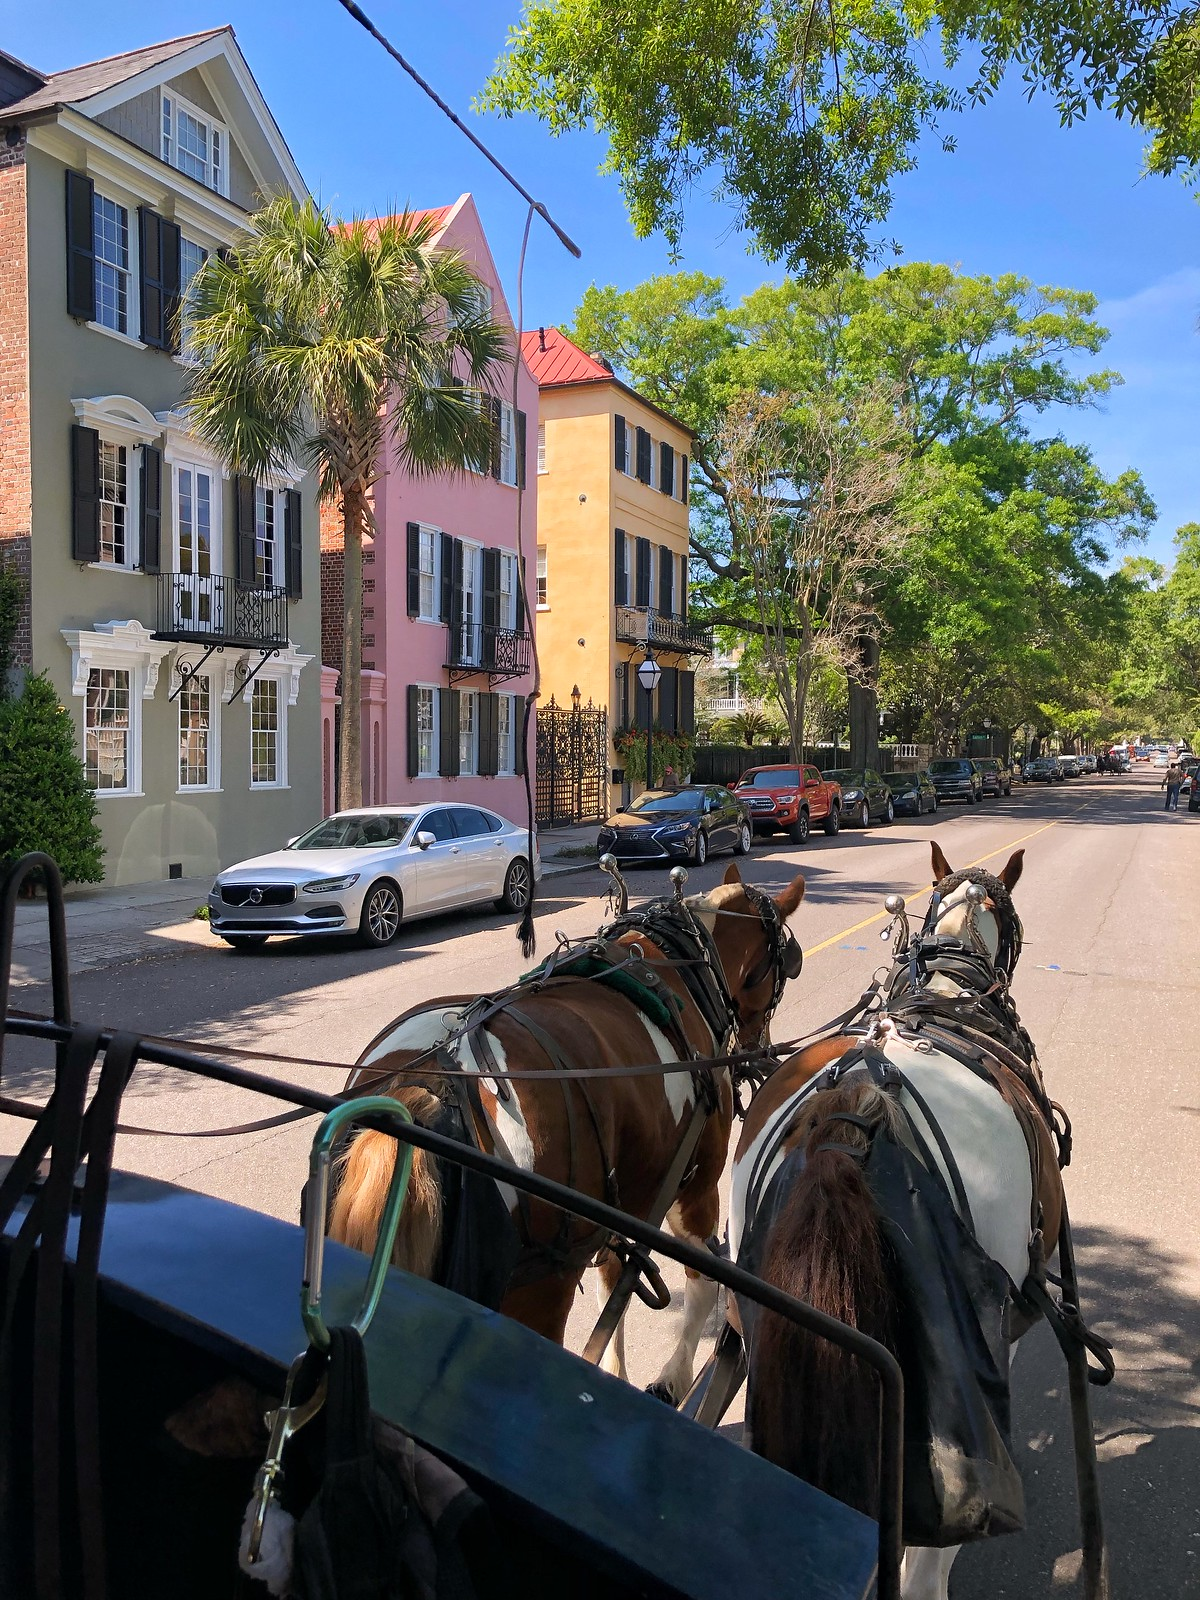 Palmetto Carriage Works Horse Tour | Most Beautiful Houses of Charleston | Colorful Houses of Charleston | What to do in Charleston | First Timer's Guide to 3 Days in Charleston South Carolina | Charleston Travel Guide | Best Things to do in Charleston | Best Places to visit in Charleston